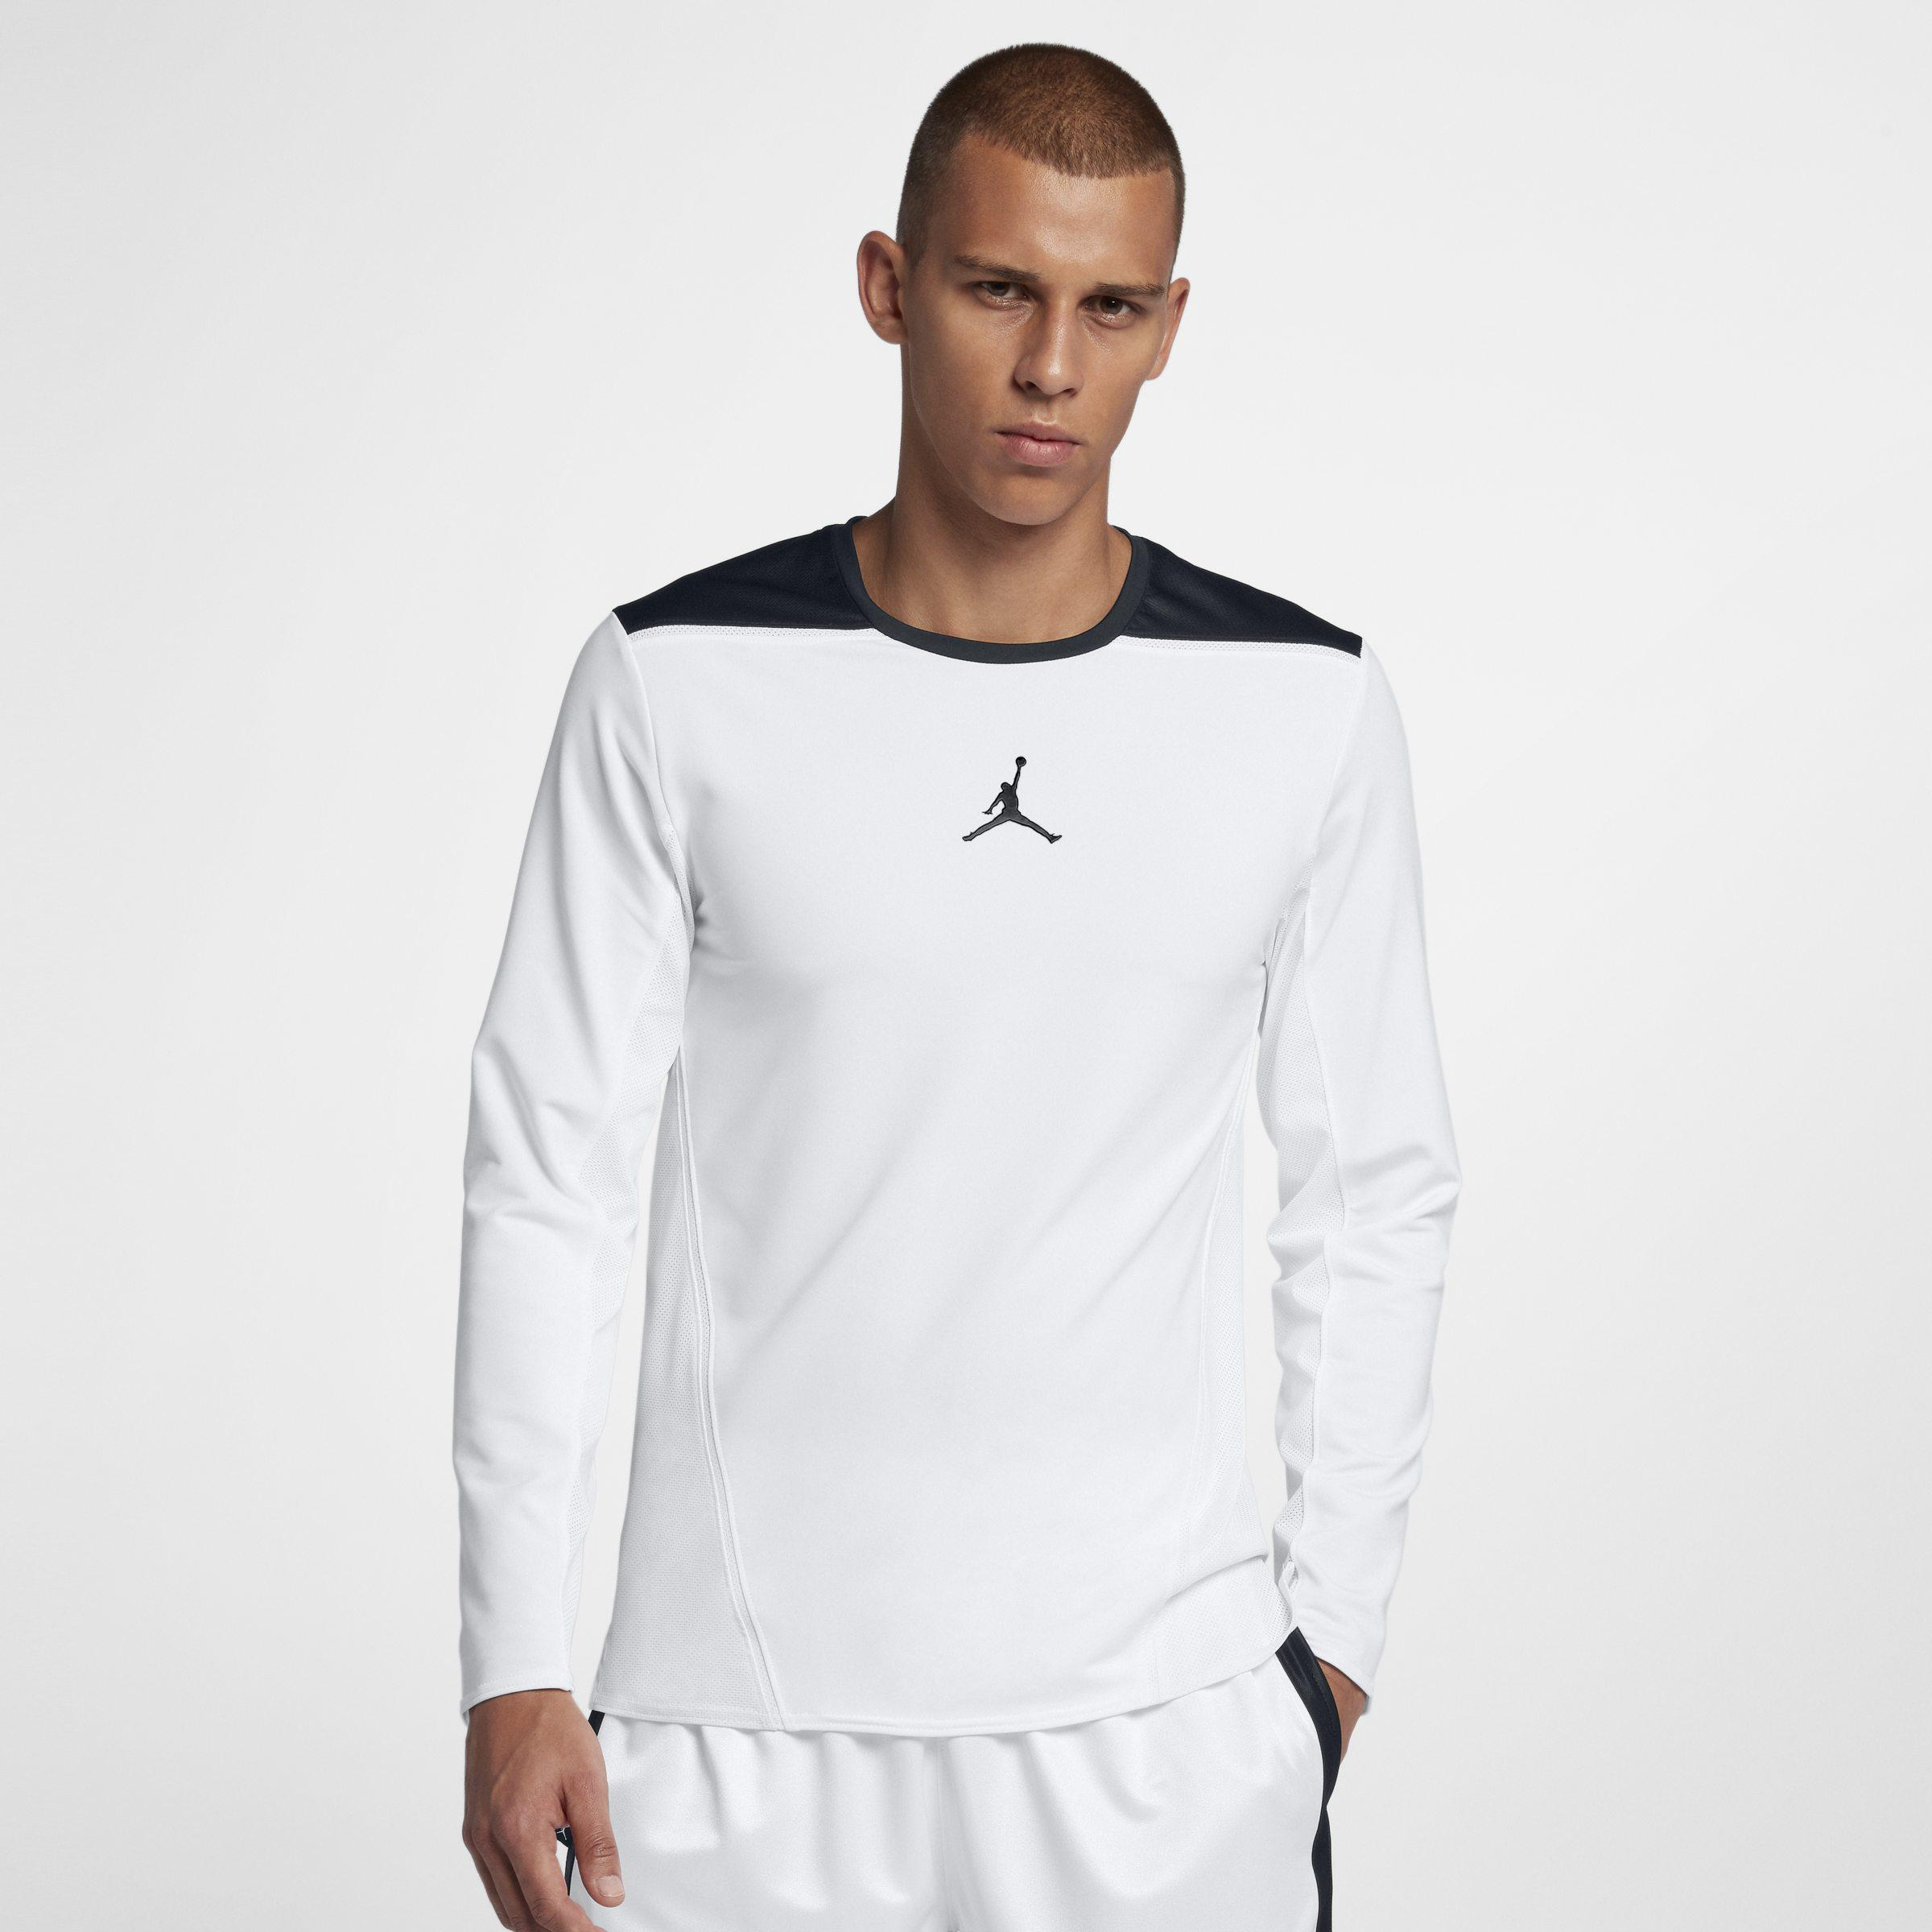 e34cd6a6750b Nike Jordan Ultimate Flight Basketball Shooting Top in White for Men ...